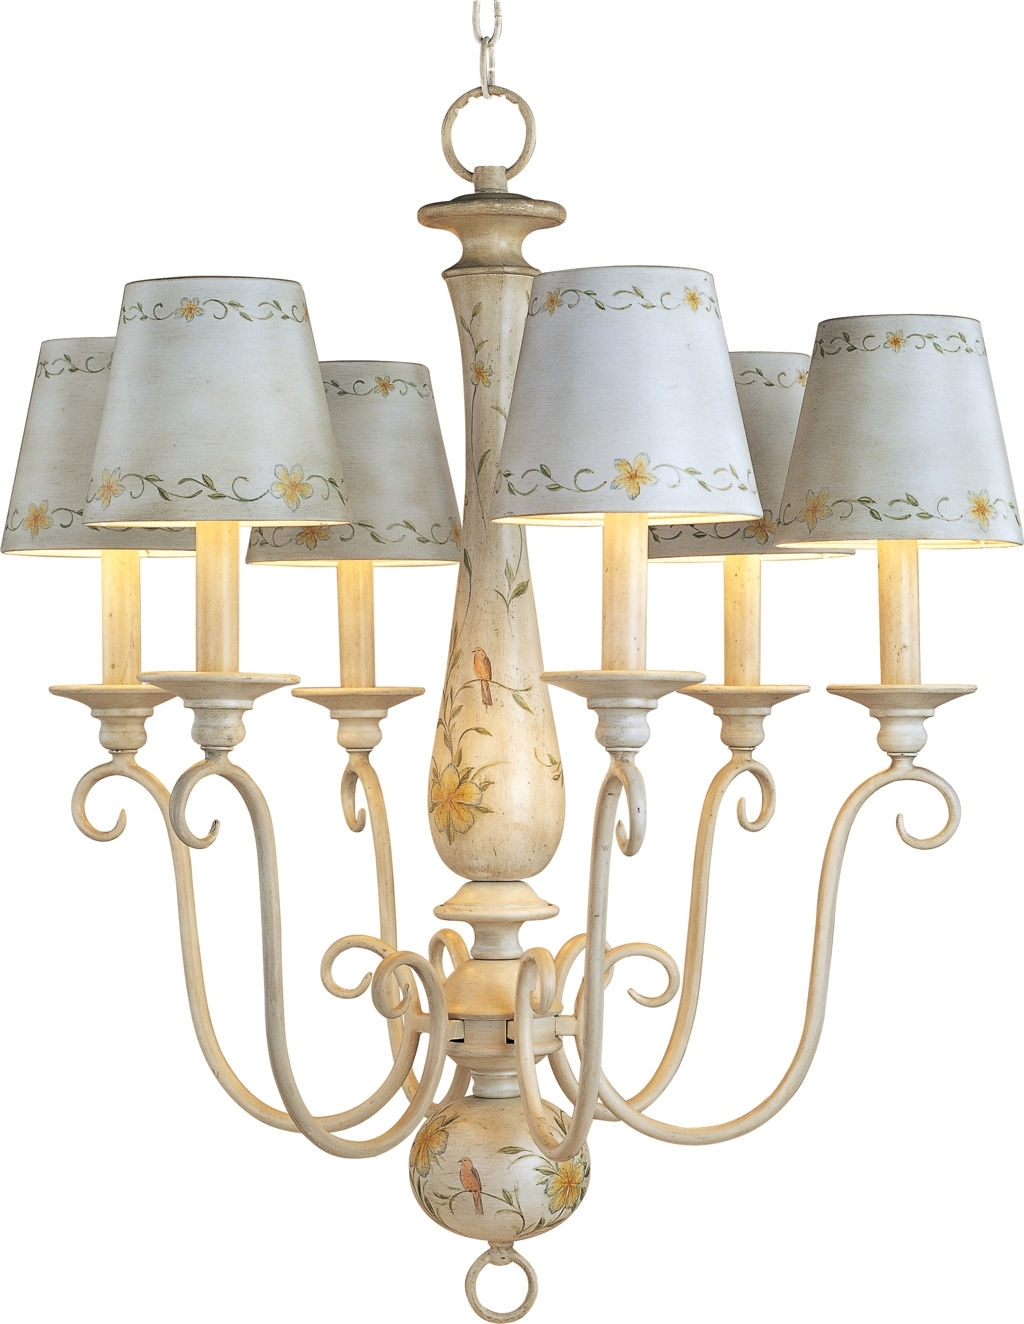 2018 Chandelier Light Shades Regarding Chandelier Lamp Shades Plus Sconce Light Shades Plus Large Grey (View 1 of 15)